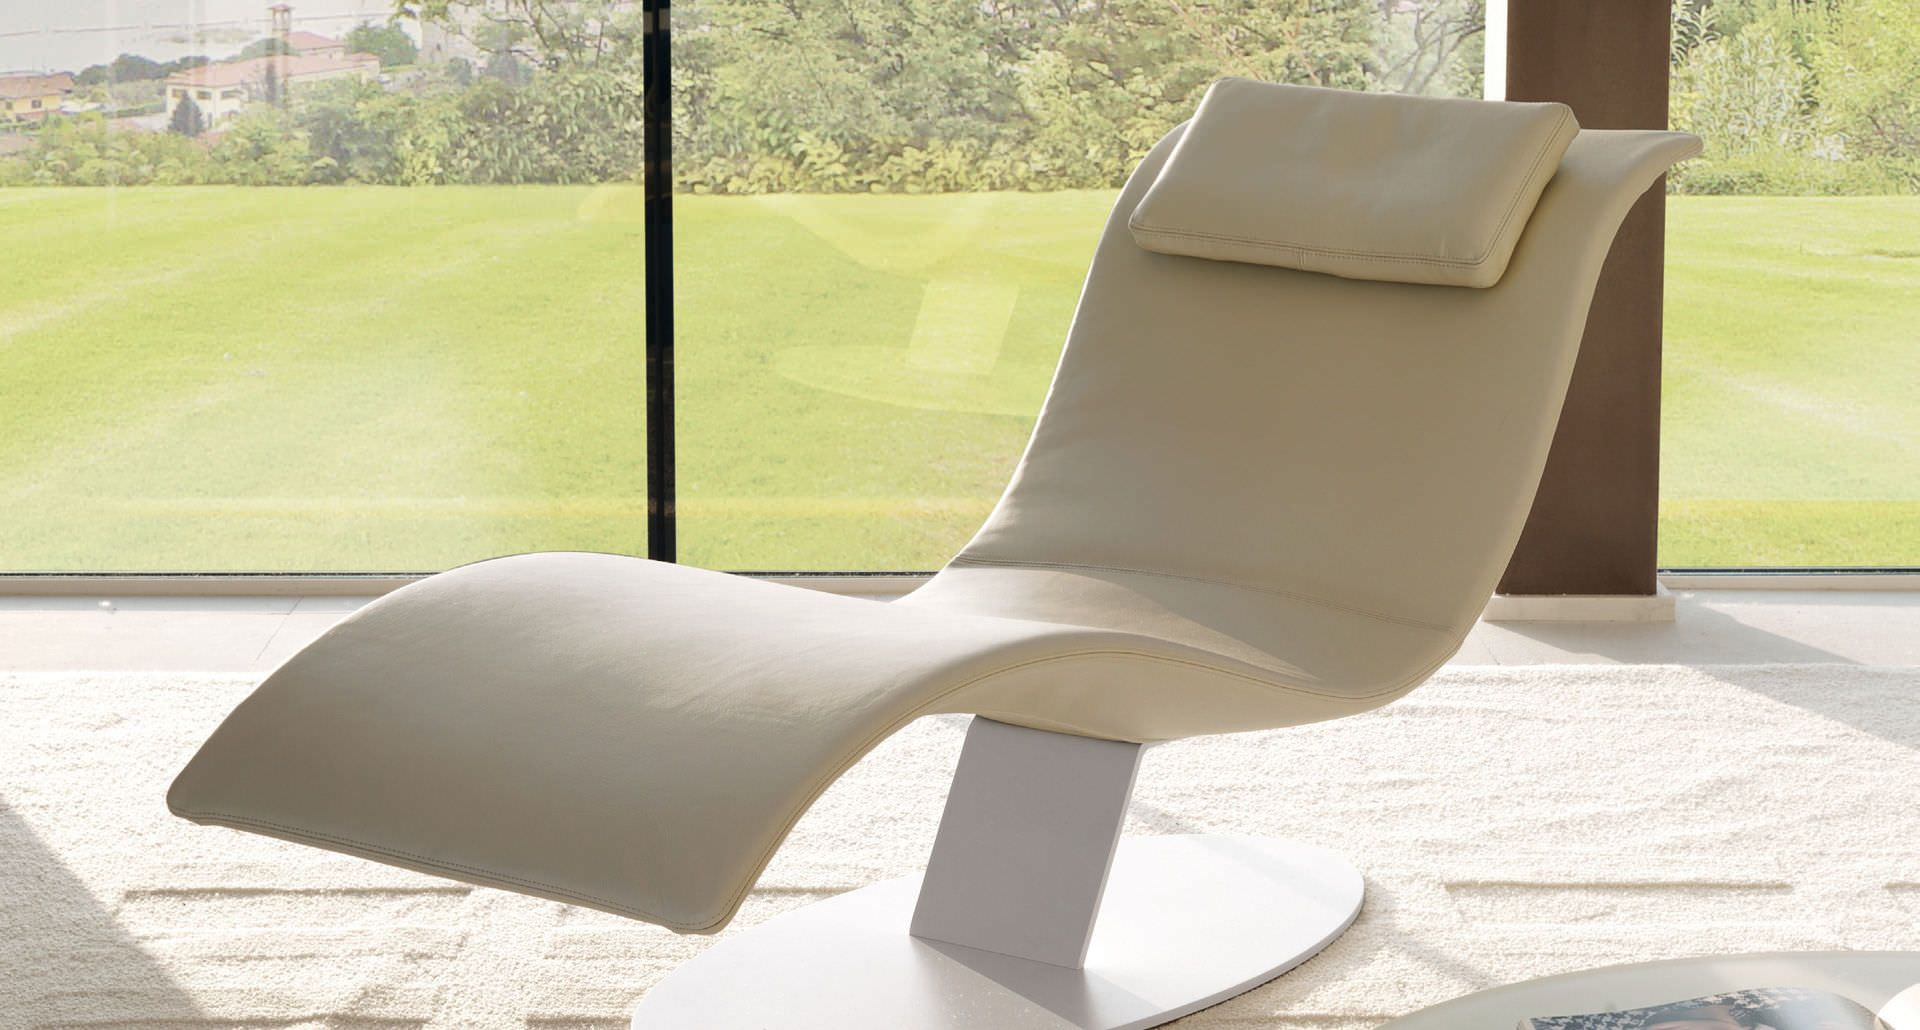 Cream Contemporary Floating Chaise Lounge Featuring Curve Shaped And  Rectangular Cushion Together White Metal Base